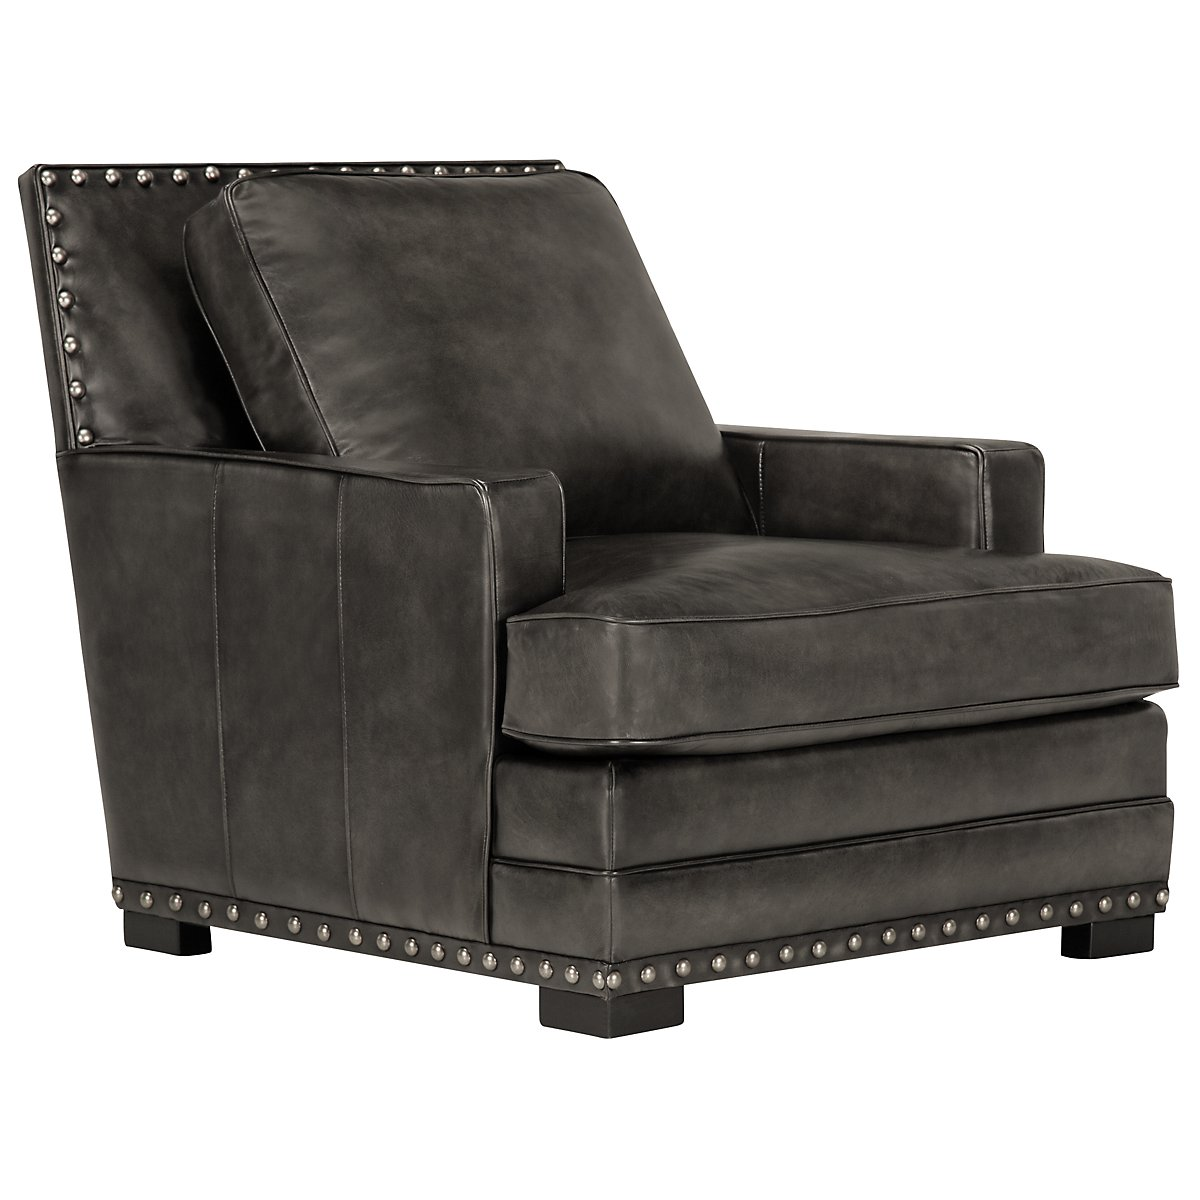 Cantor Dark Gray Leather Chair